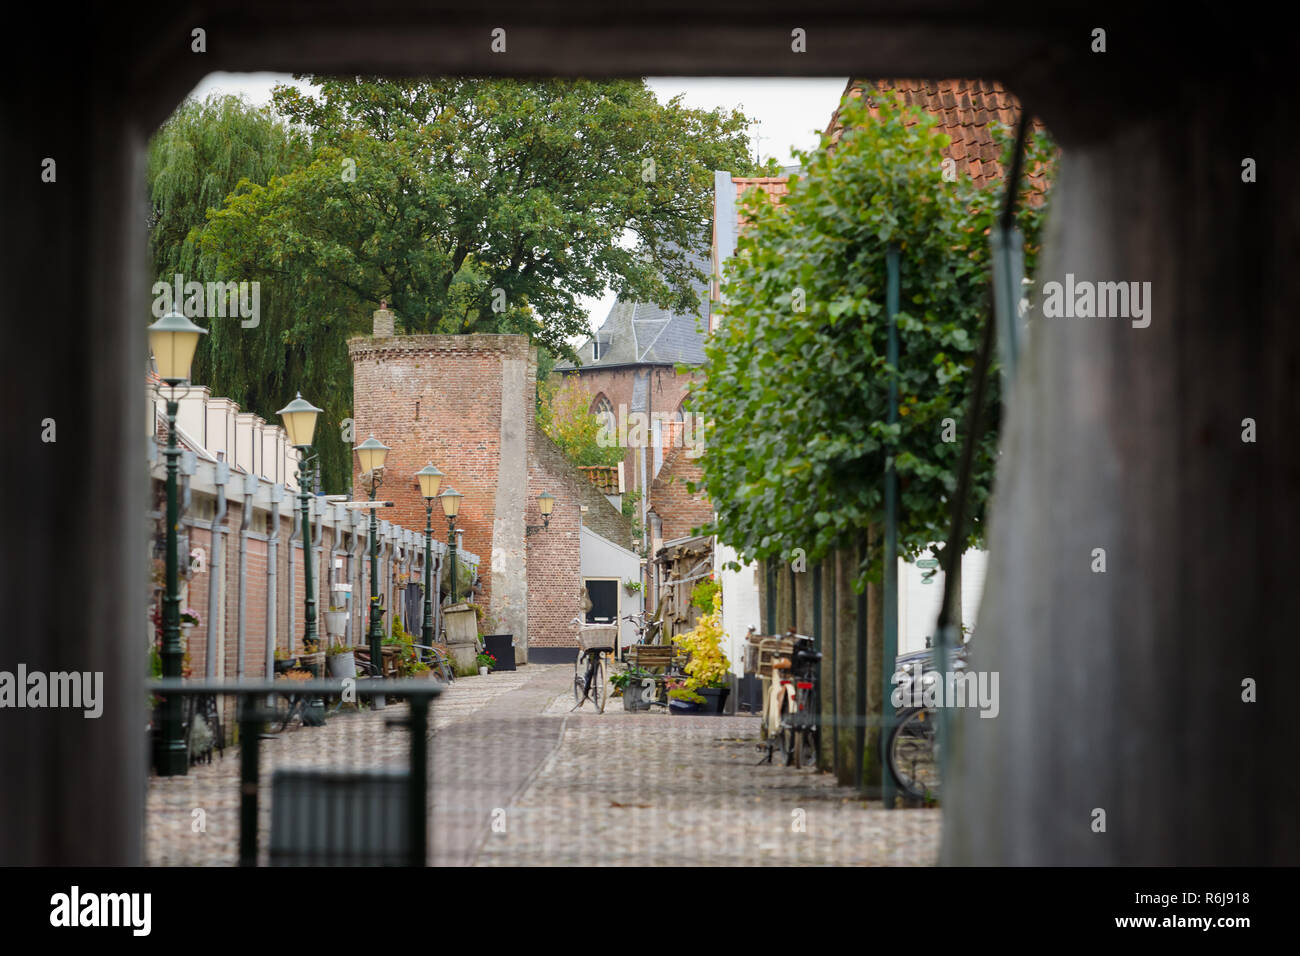 Narrow street in the old town of Elburg. An old tourist fortress in the Netherlands that goes back to the Middle Ages and was part of the sites around - Stock Image